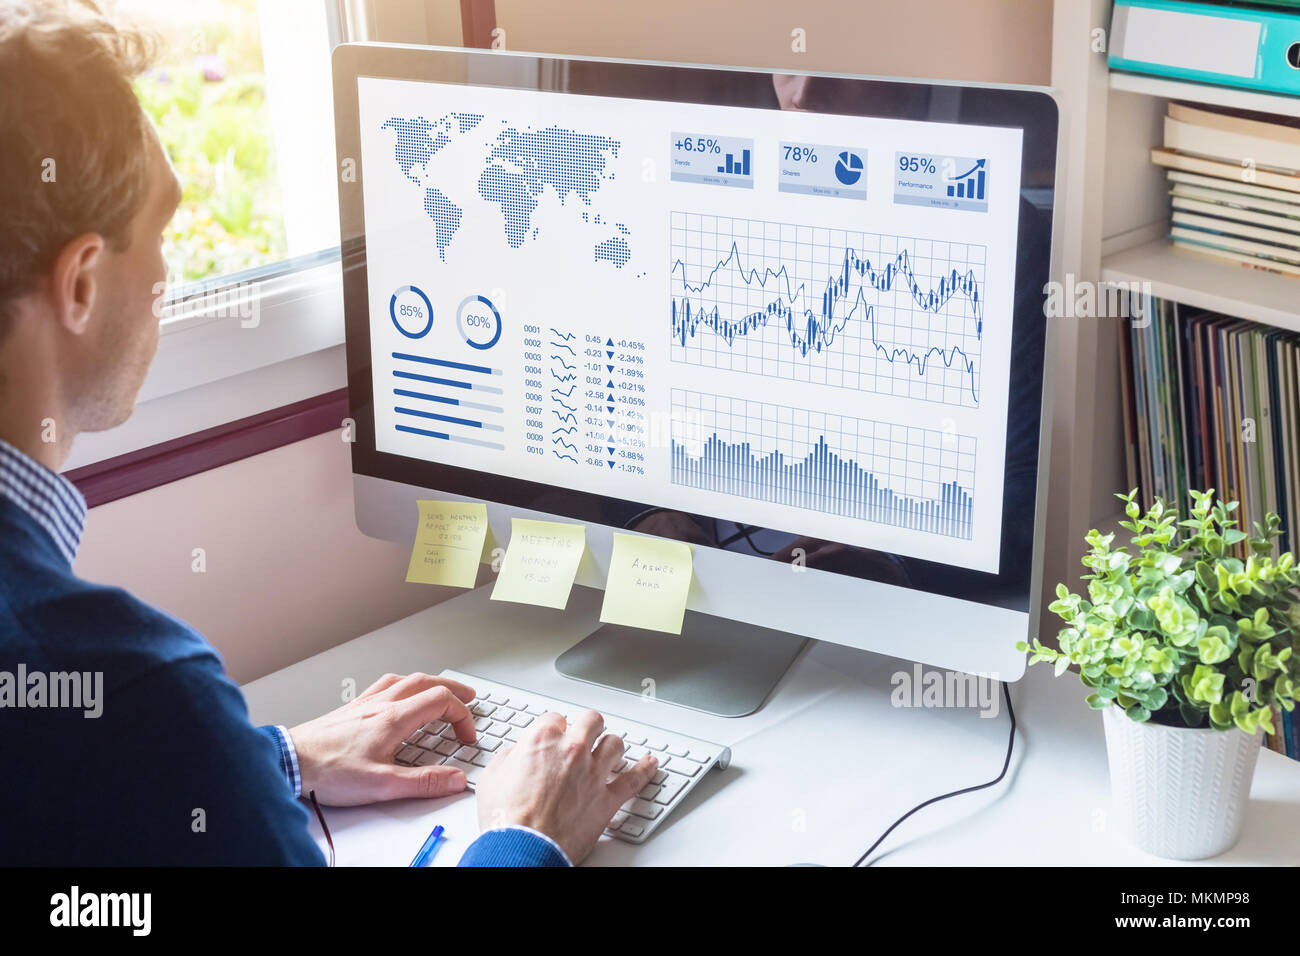 Businessman analyzing Business Analytics (BA) or Intelligence (BI) dashboard with Key Performance Indicators (KPI) and financial metrics to take inves - Stock Image